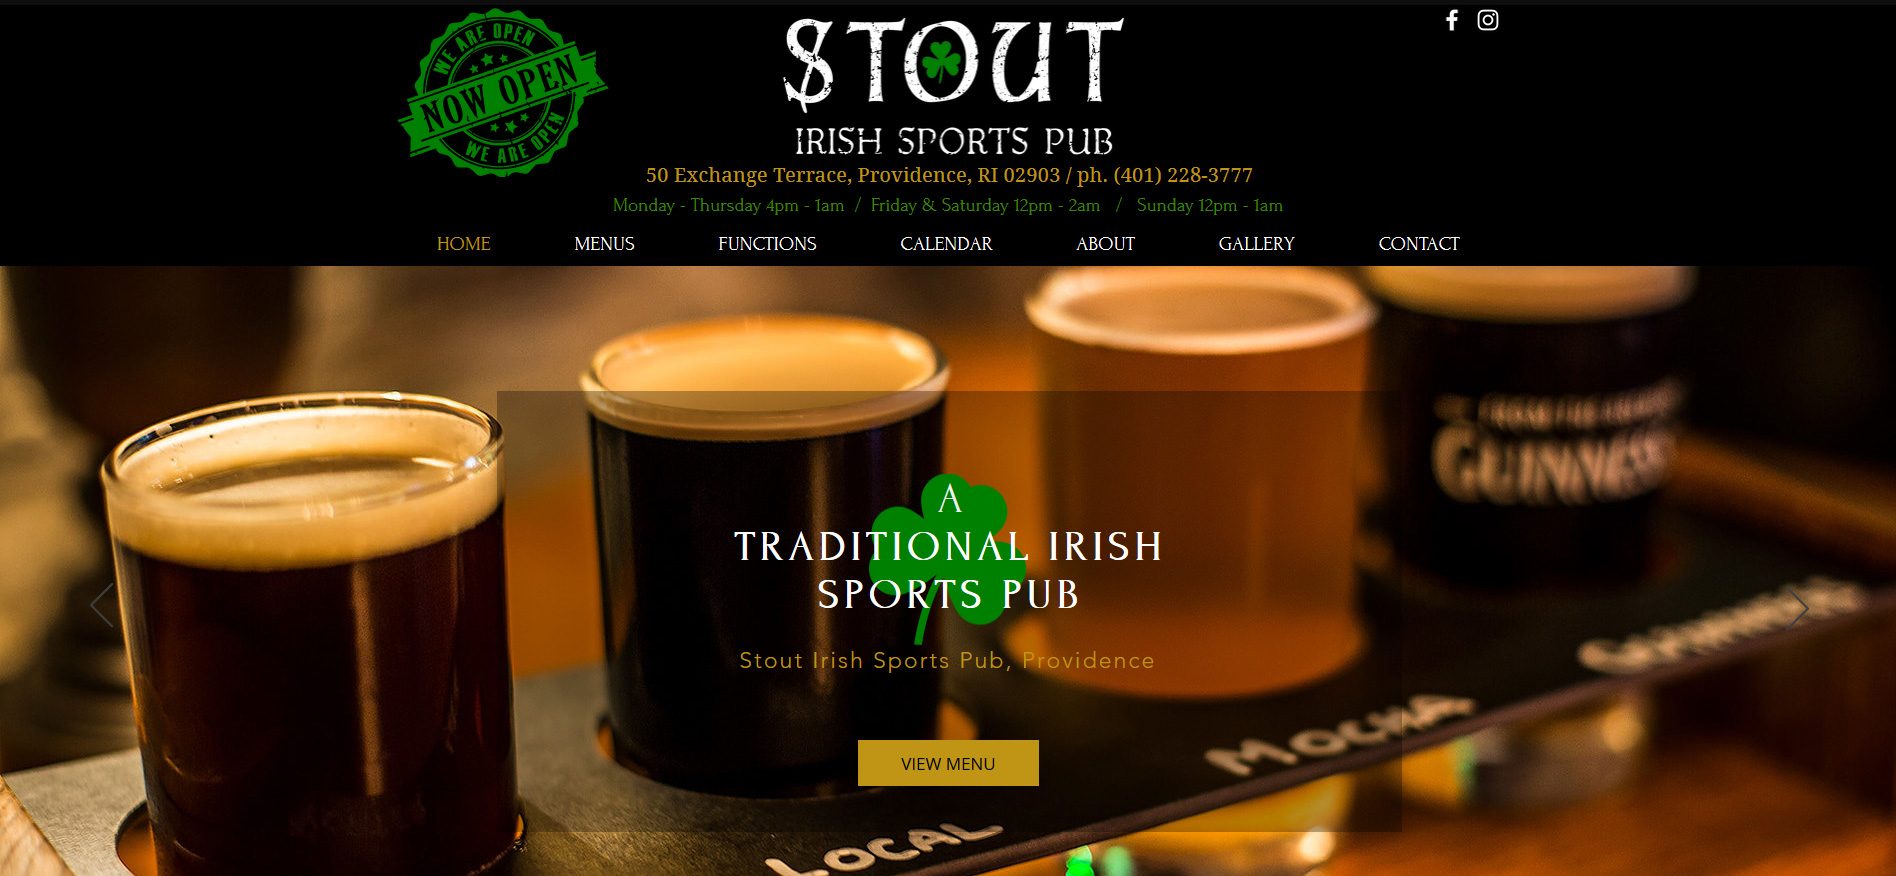 Stout Irish Sports Pub, Providence